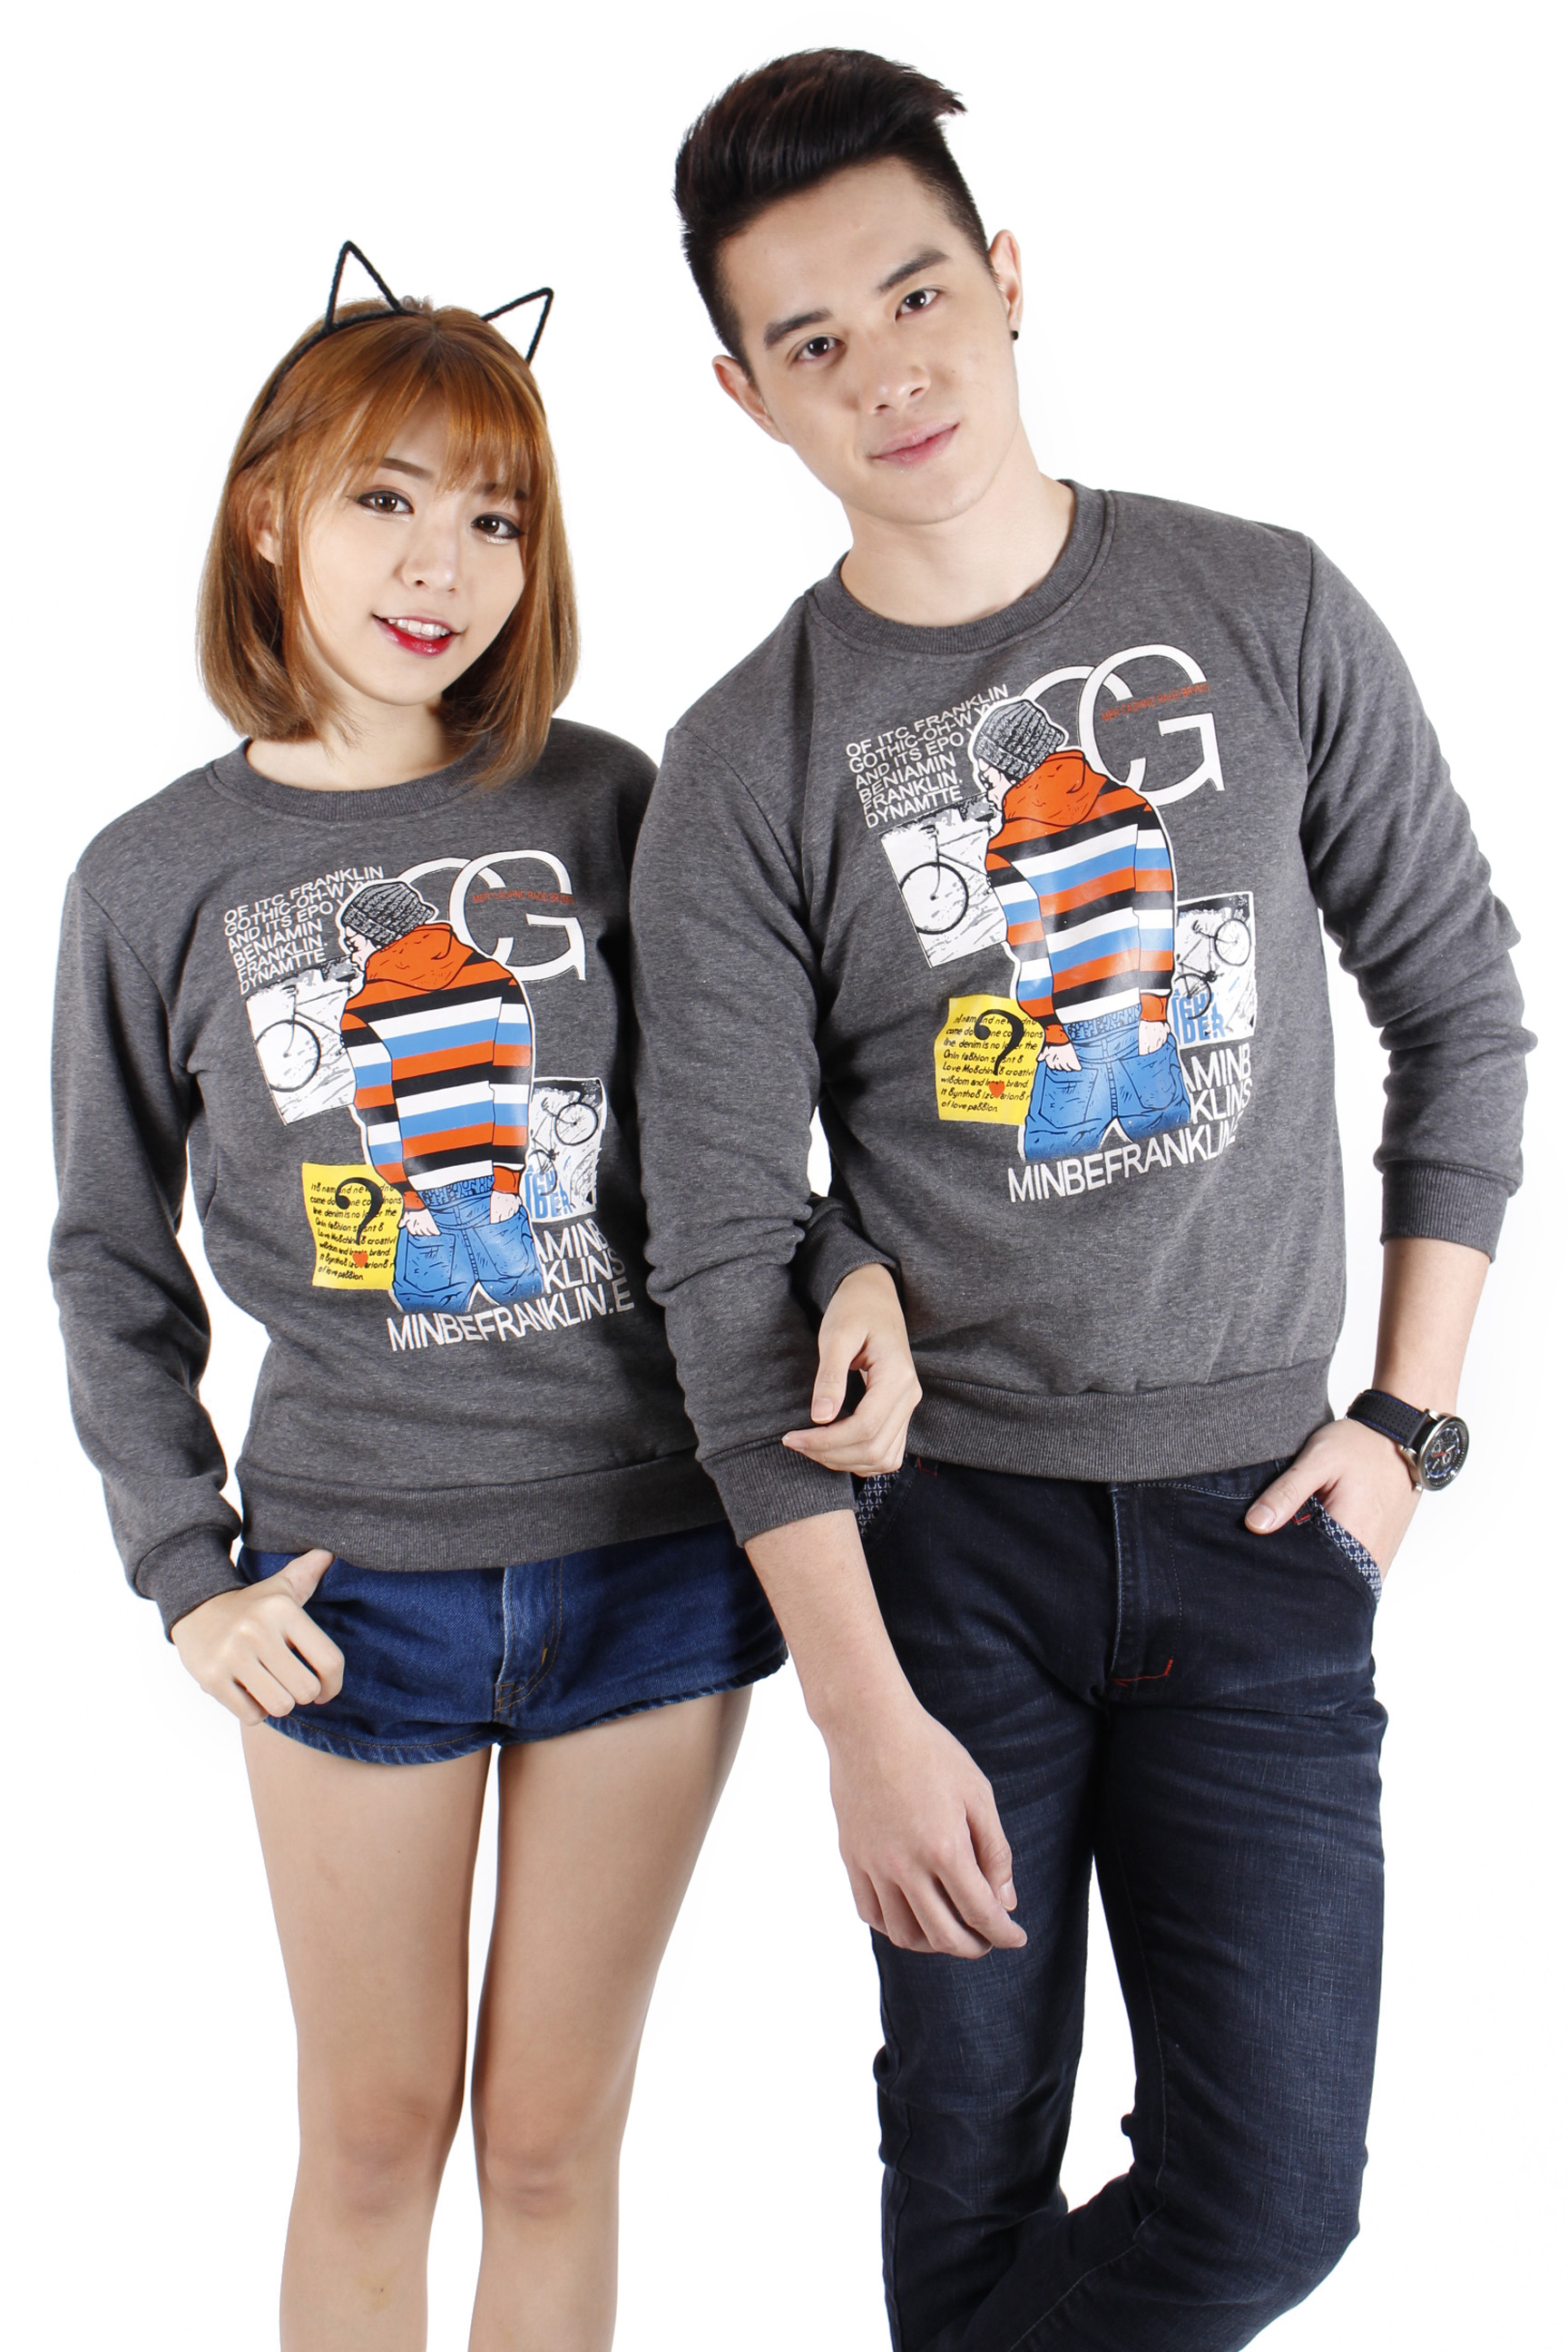 You searched for: couples shirts! Etsy is the home to thousands of handmade, vintage, and one-of-a-kind products and gifts related to your search. No matter what you're looking for or where you are in the world, our global marketplace of sellers can help you find unique and affordable options. Let's get started!